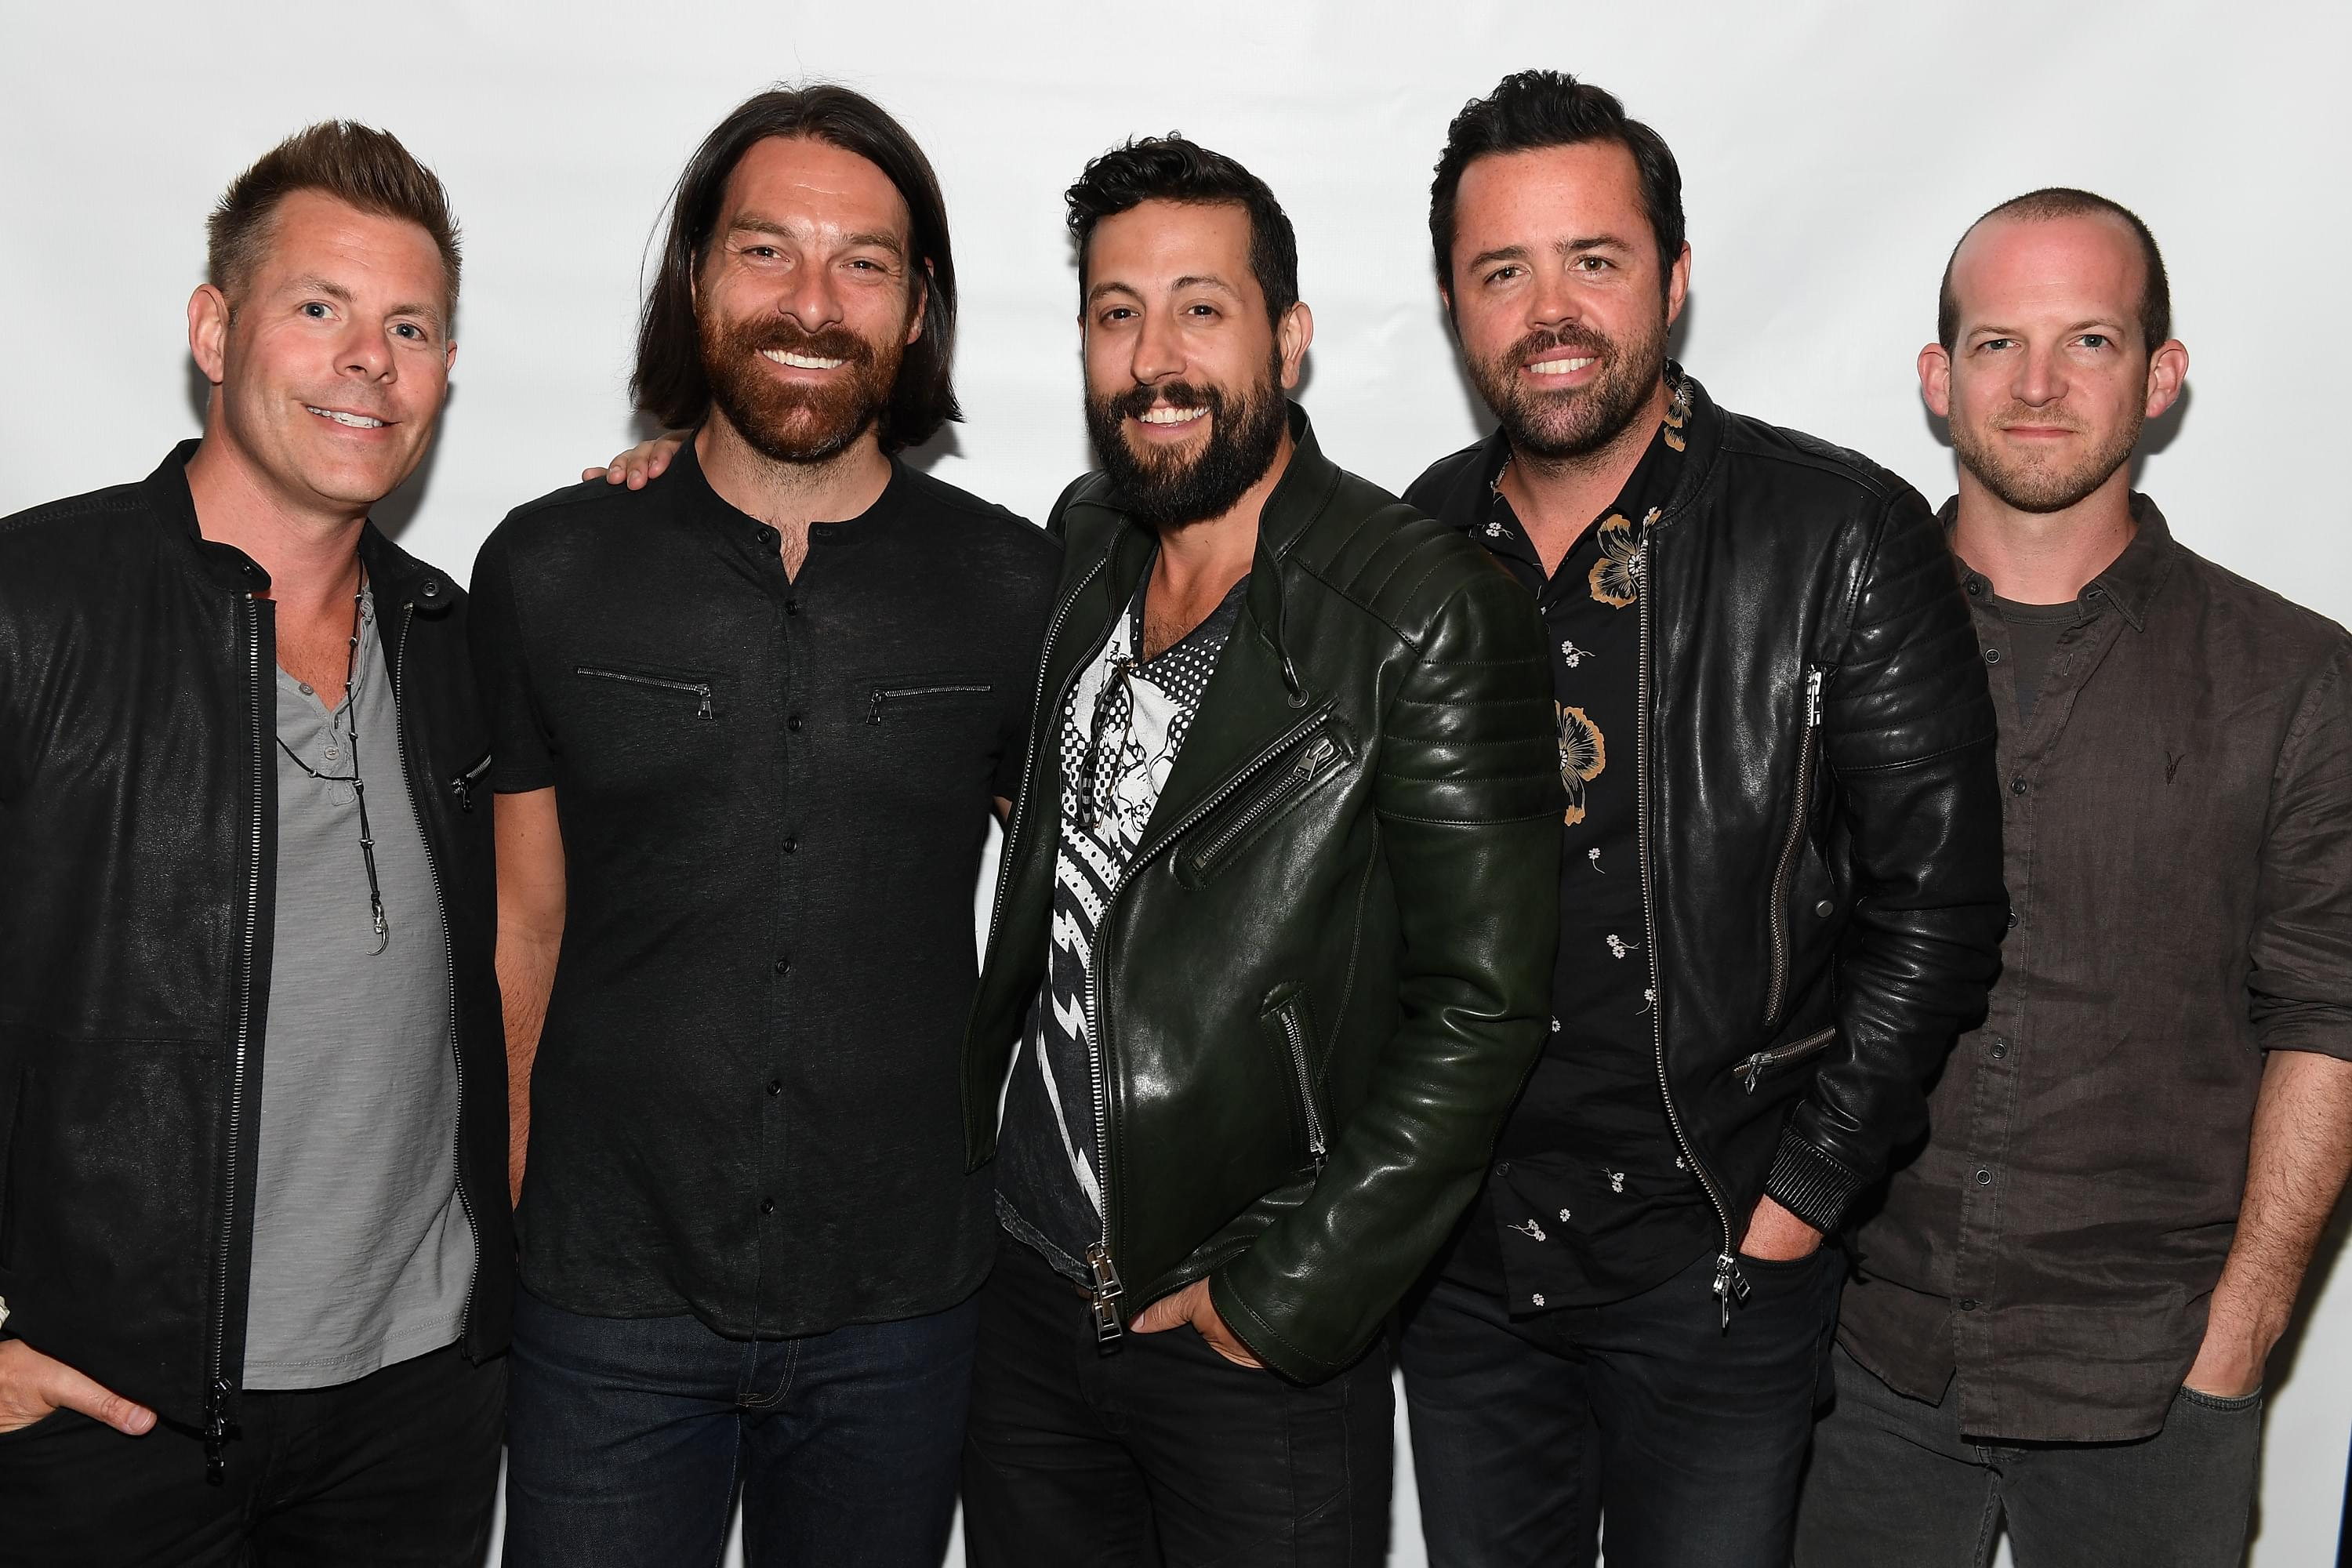 Foo Fighters' Dave Grohl Lends Old Dominion's Matt Ramsey His Rock Throne [PHOTO]